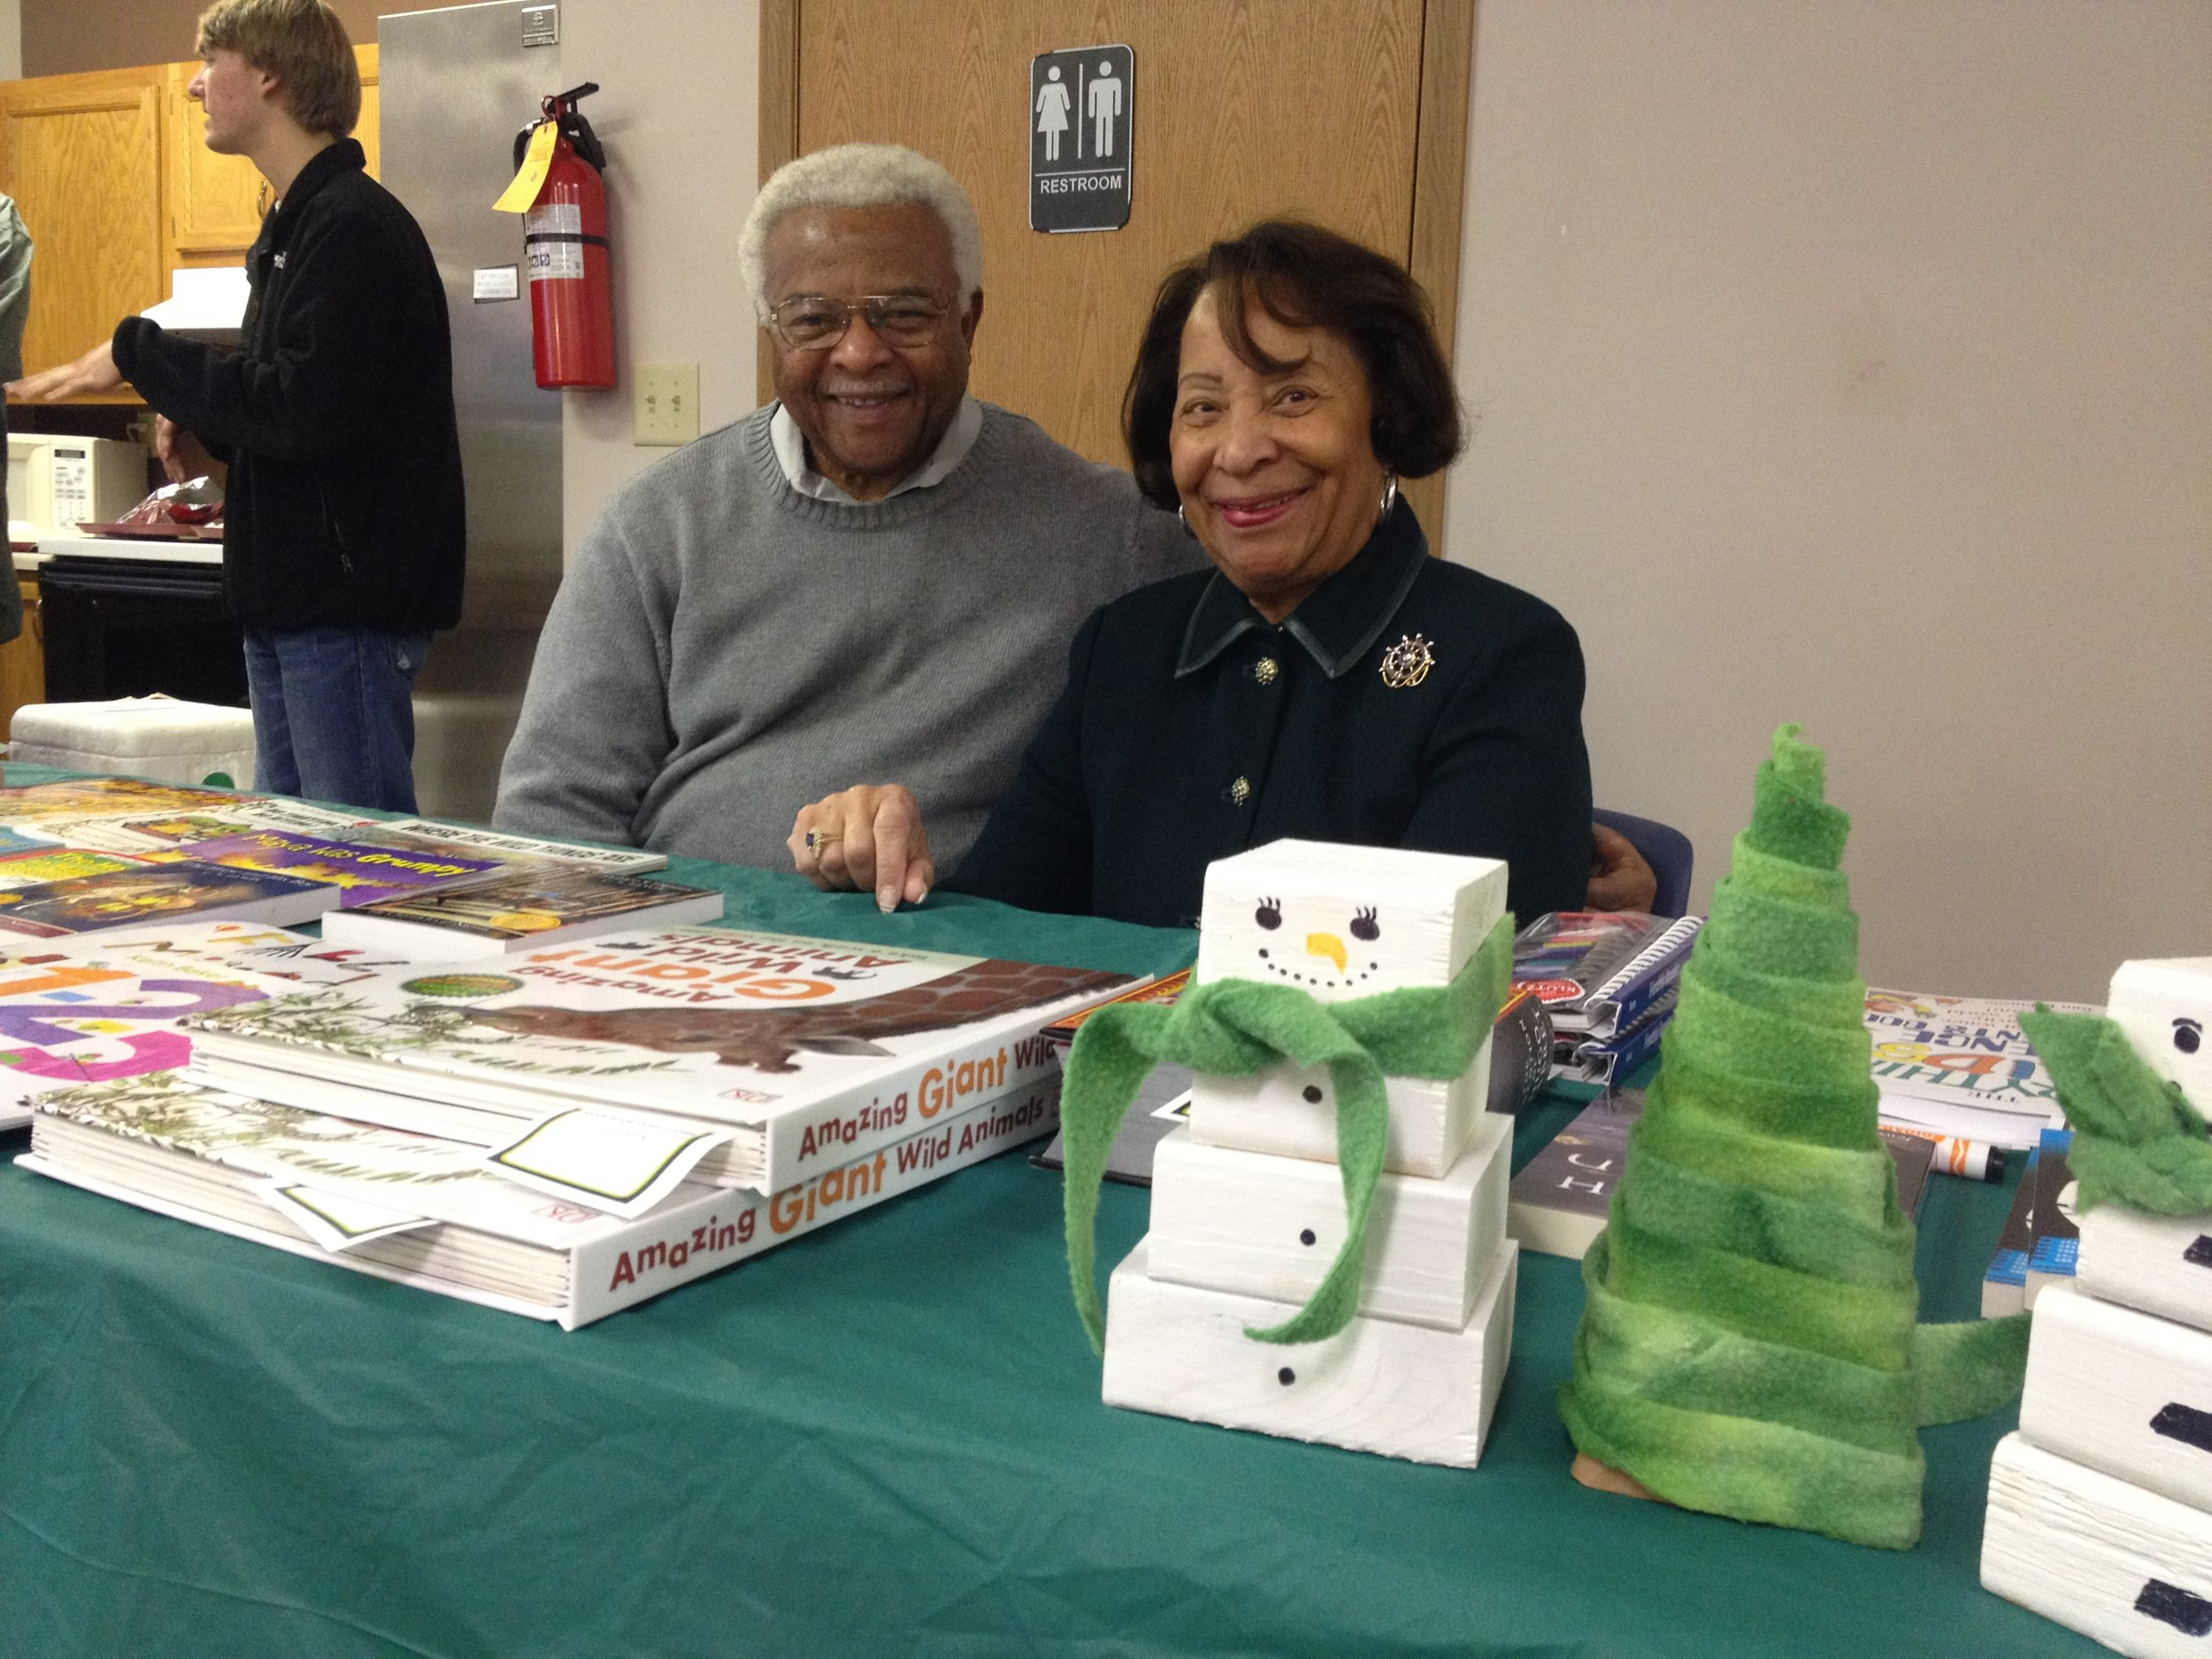 Hank Evans and Dorothy Cage Evans at Homeport event